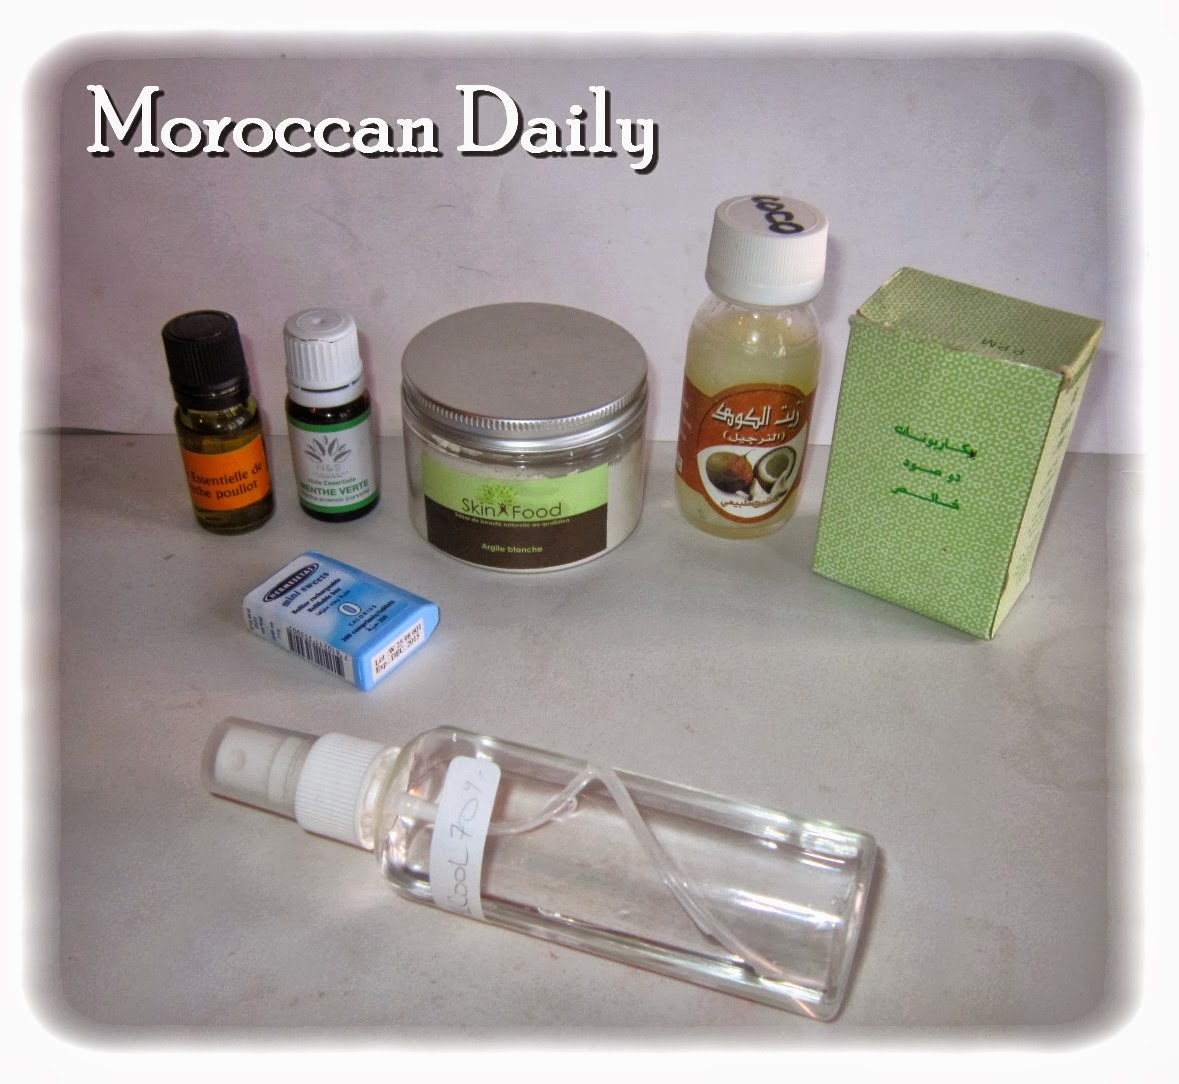 moroccan daily dentifrice 100 naturel fait maison. Black Bedroom Furniture Sets. Home Design Ideas